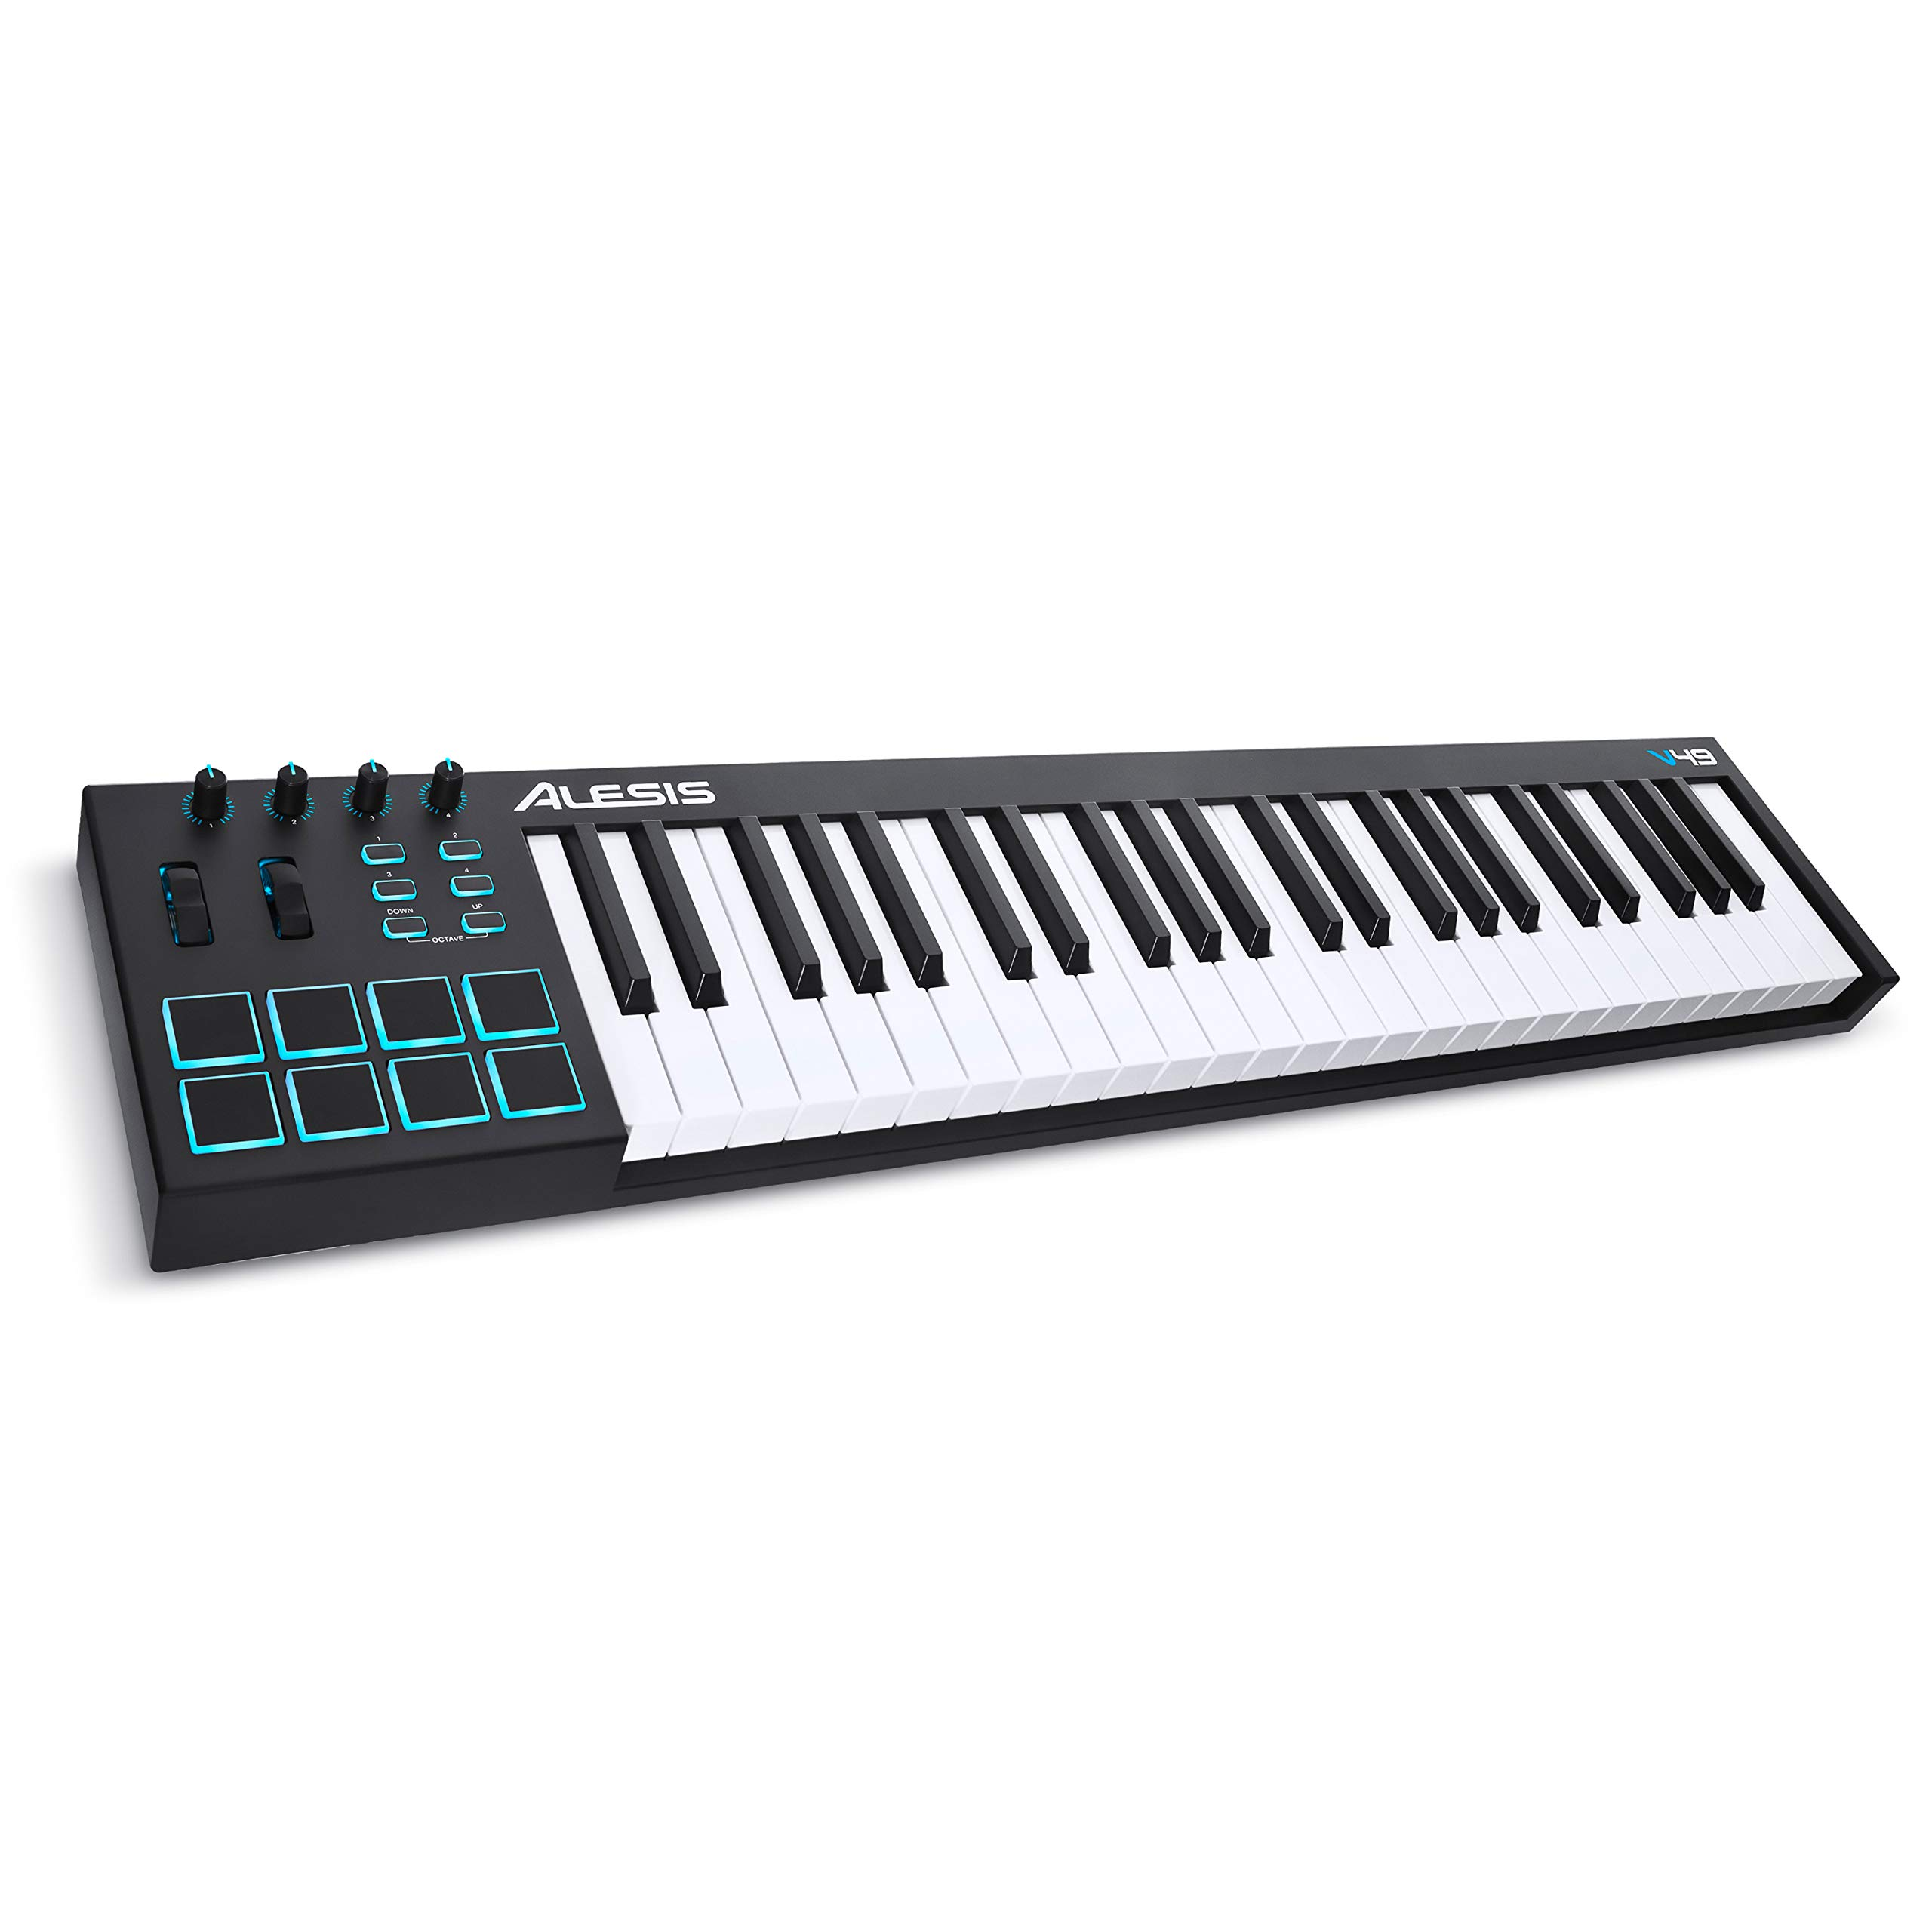 Alesis V49 | 49 Key USB MIDI Keyboard Controller with 8 Backlit Pads, 4 Assignable Knobs and Buttons, Plus a Professional Software Suite with ProTools | First Included by Alesis